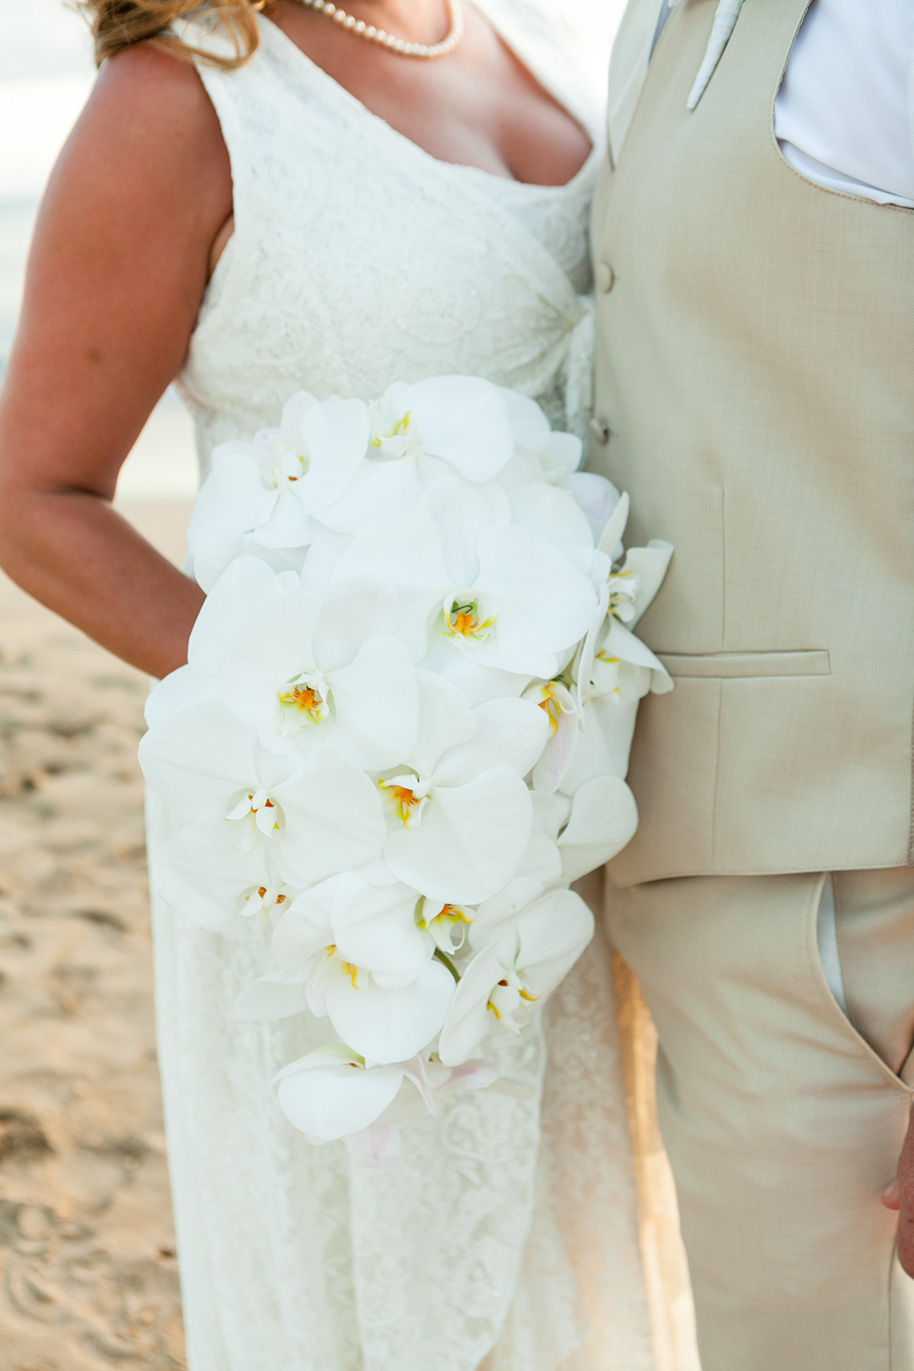 Maui-Beachside-Wedding-042916-22